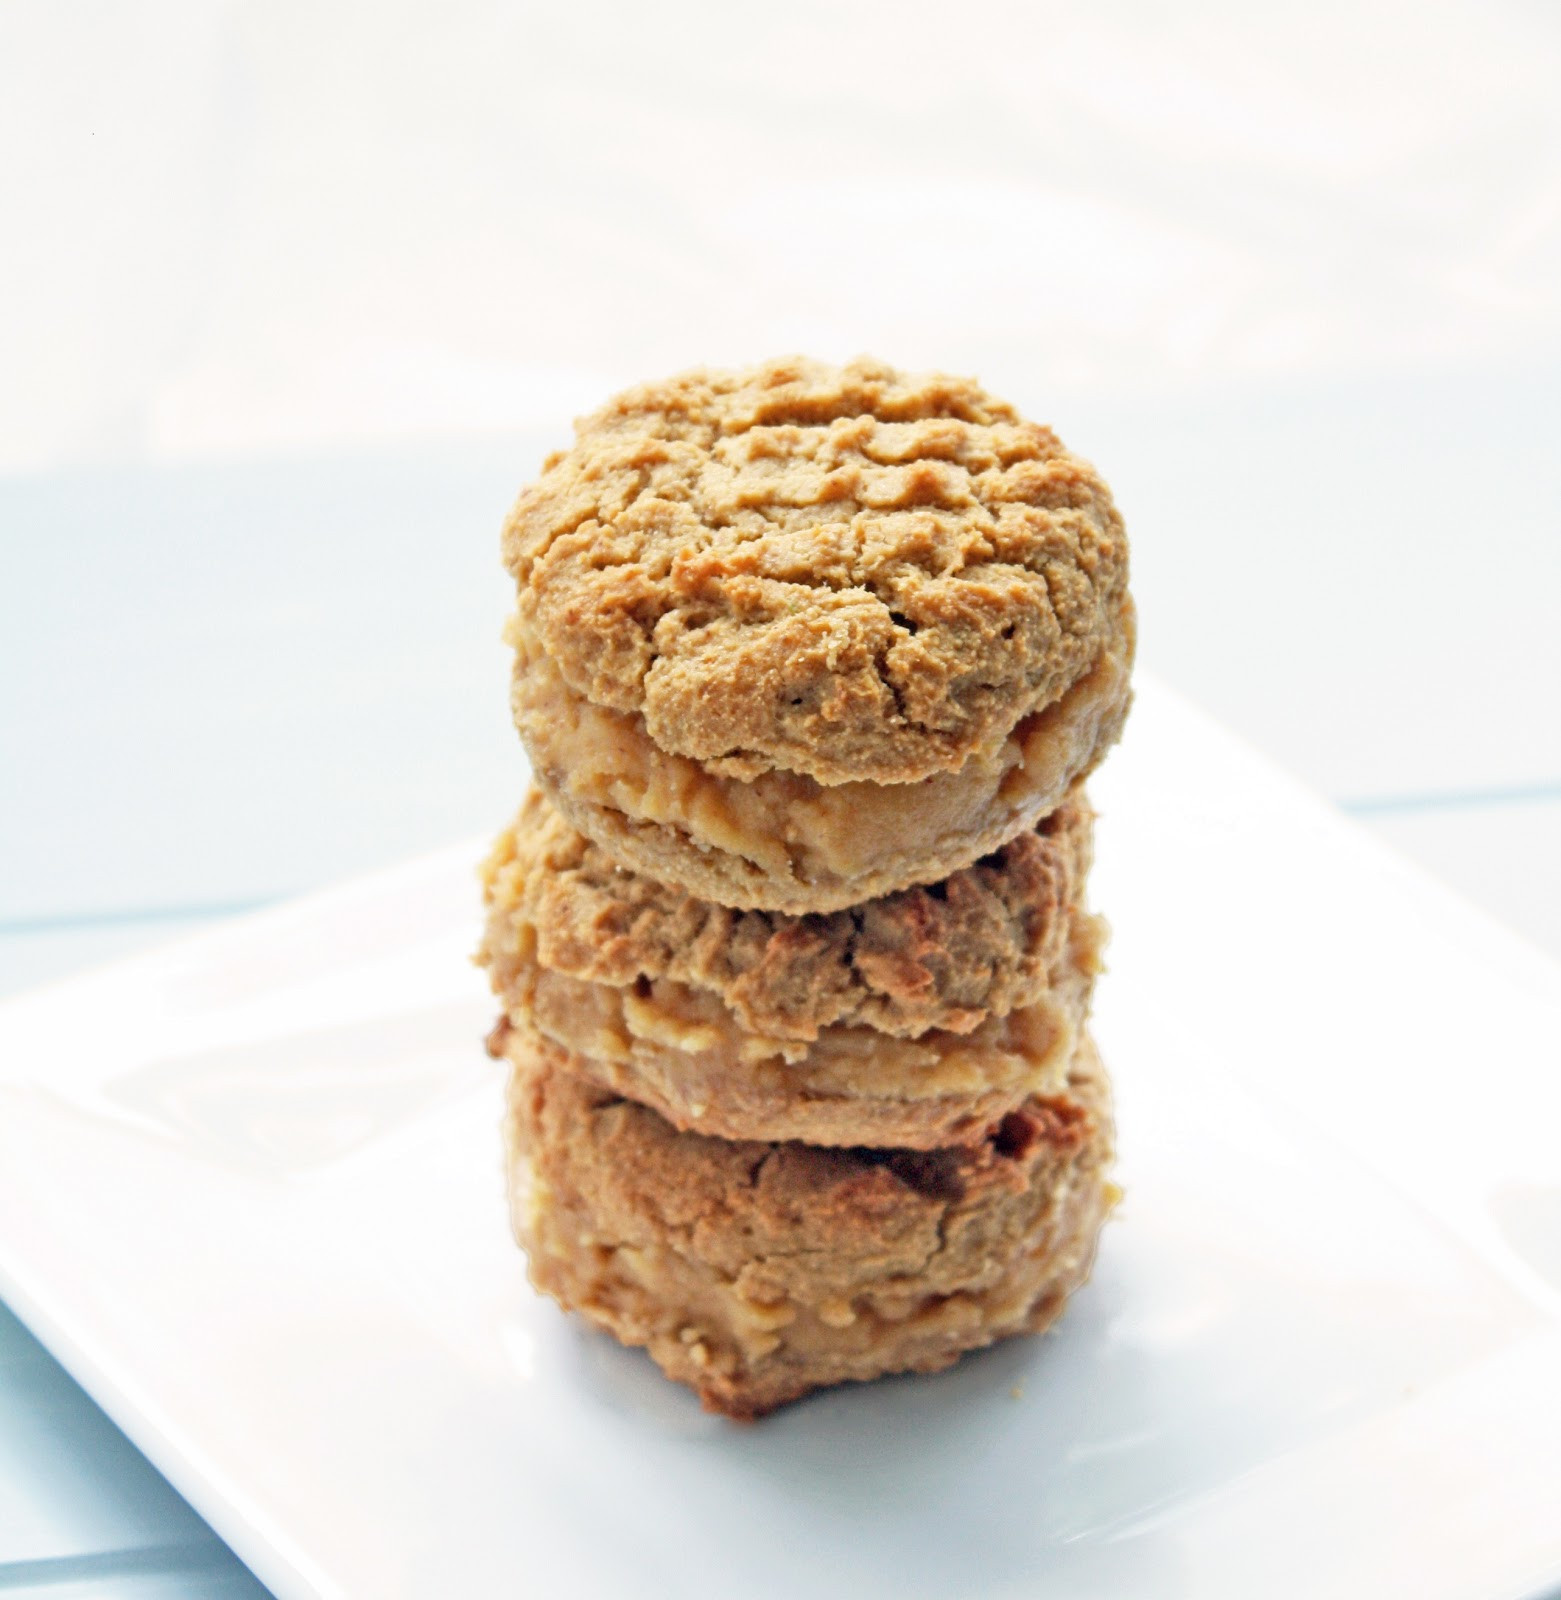 Low Carb Pb2 Recipes  low carb peanut butter cookies with pb2